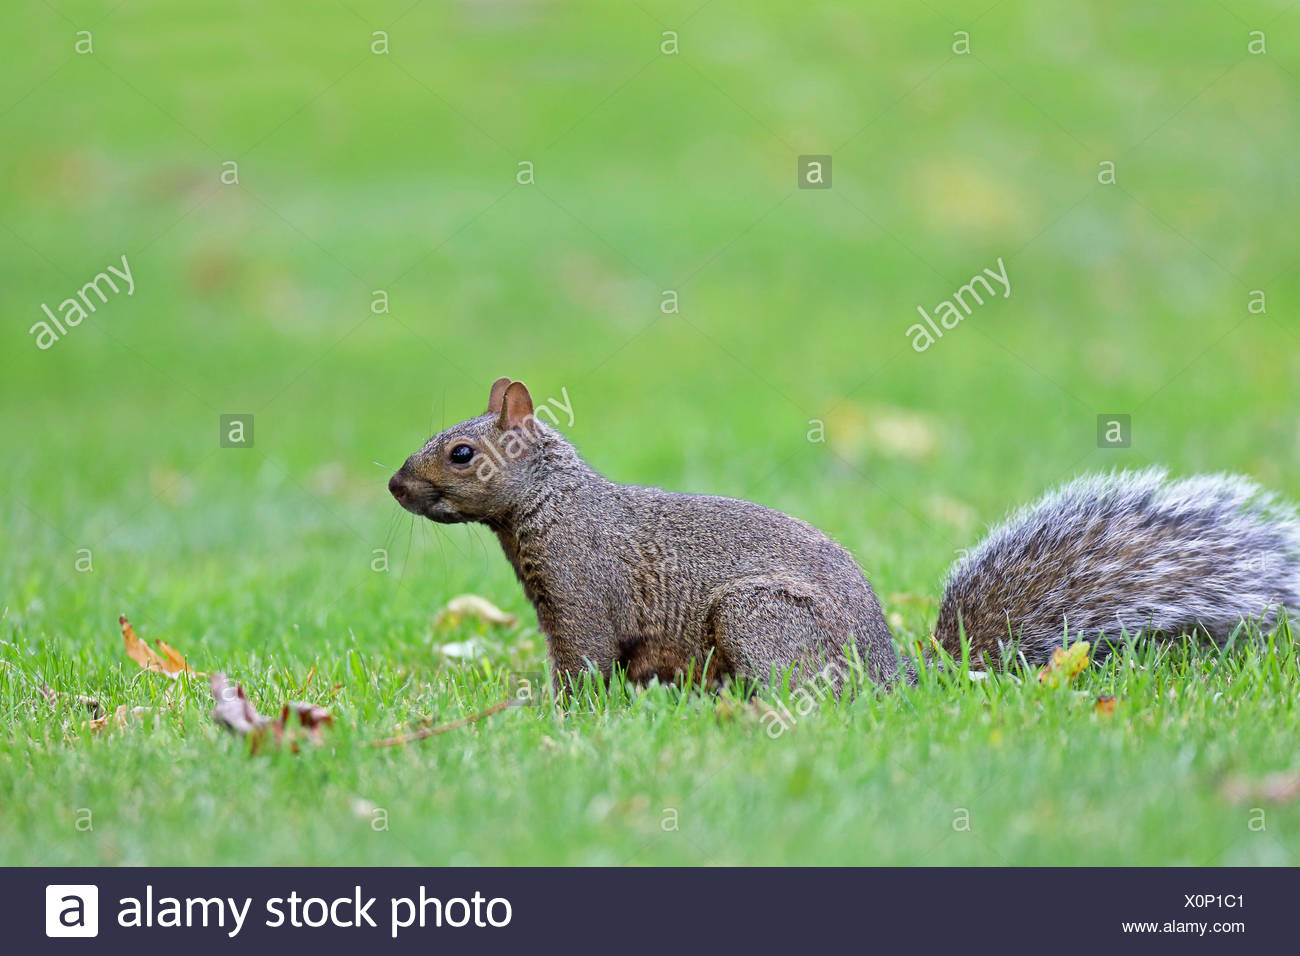 Eastern gray squirrel, Grey squirrel (Sciurus carolinensis), sits on grass, Canada, Ontario, Leamington Stock Photo